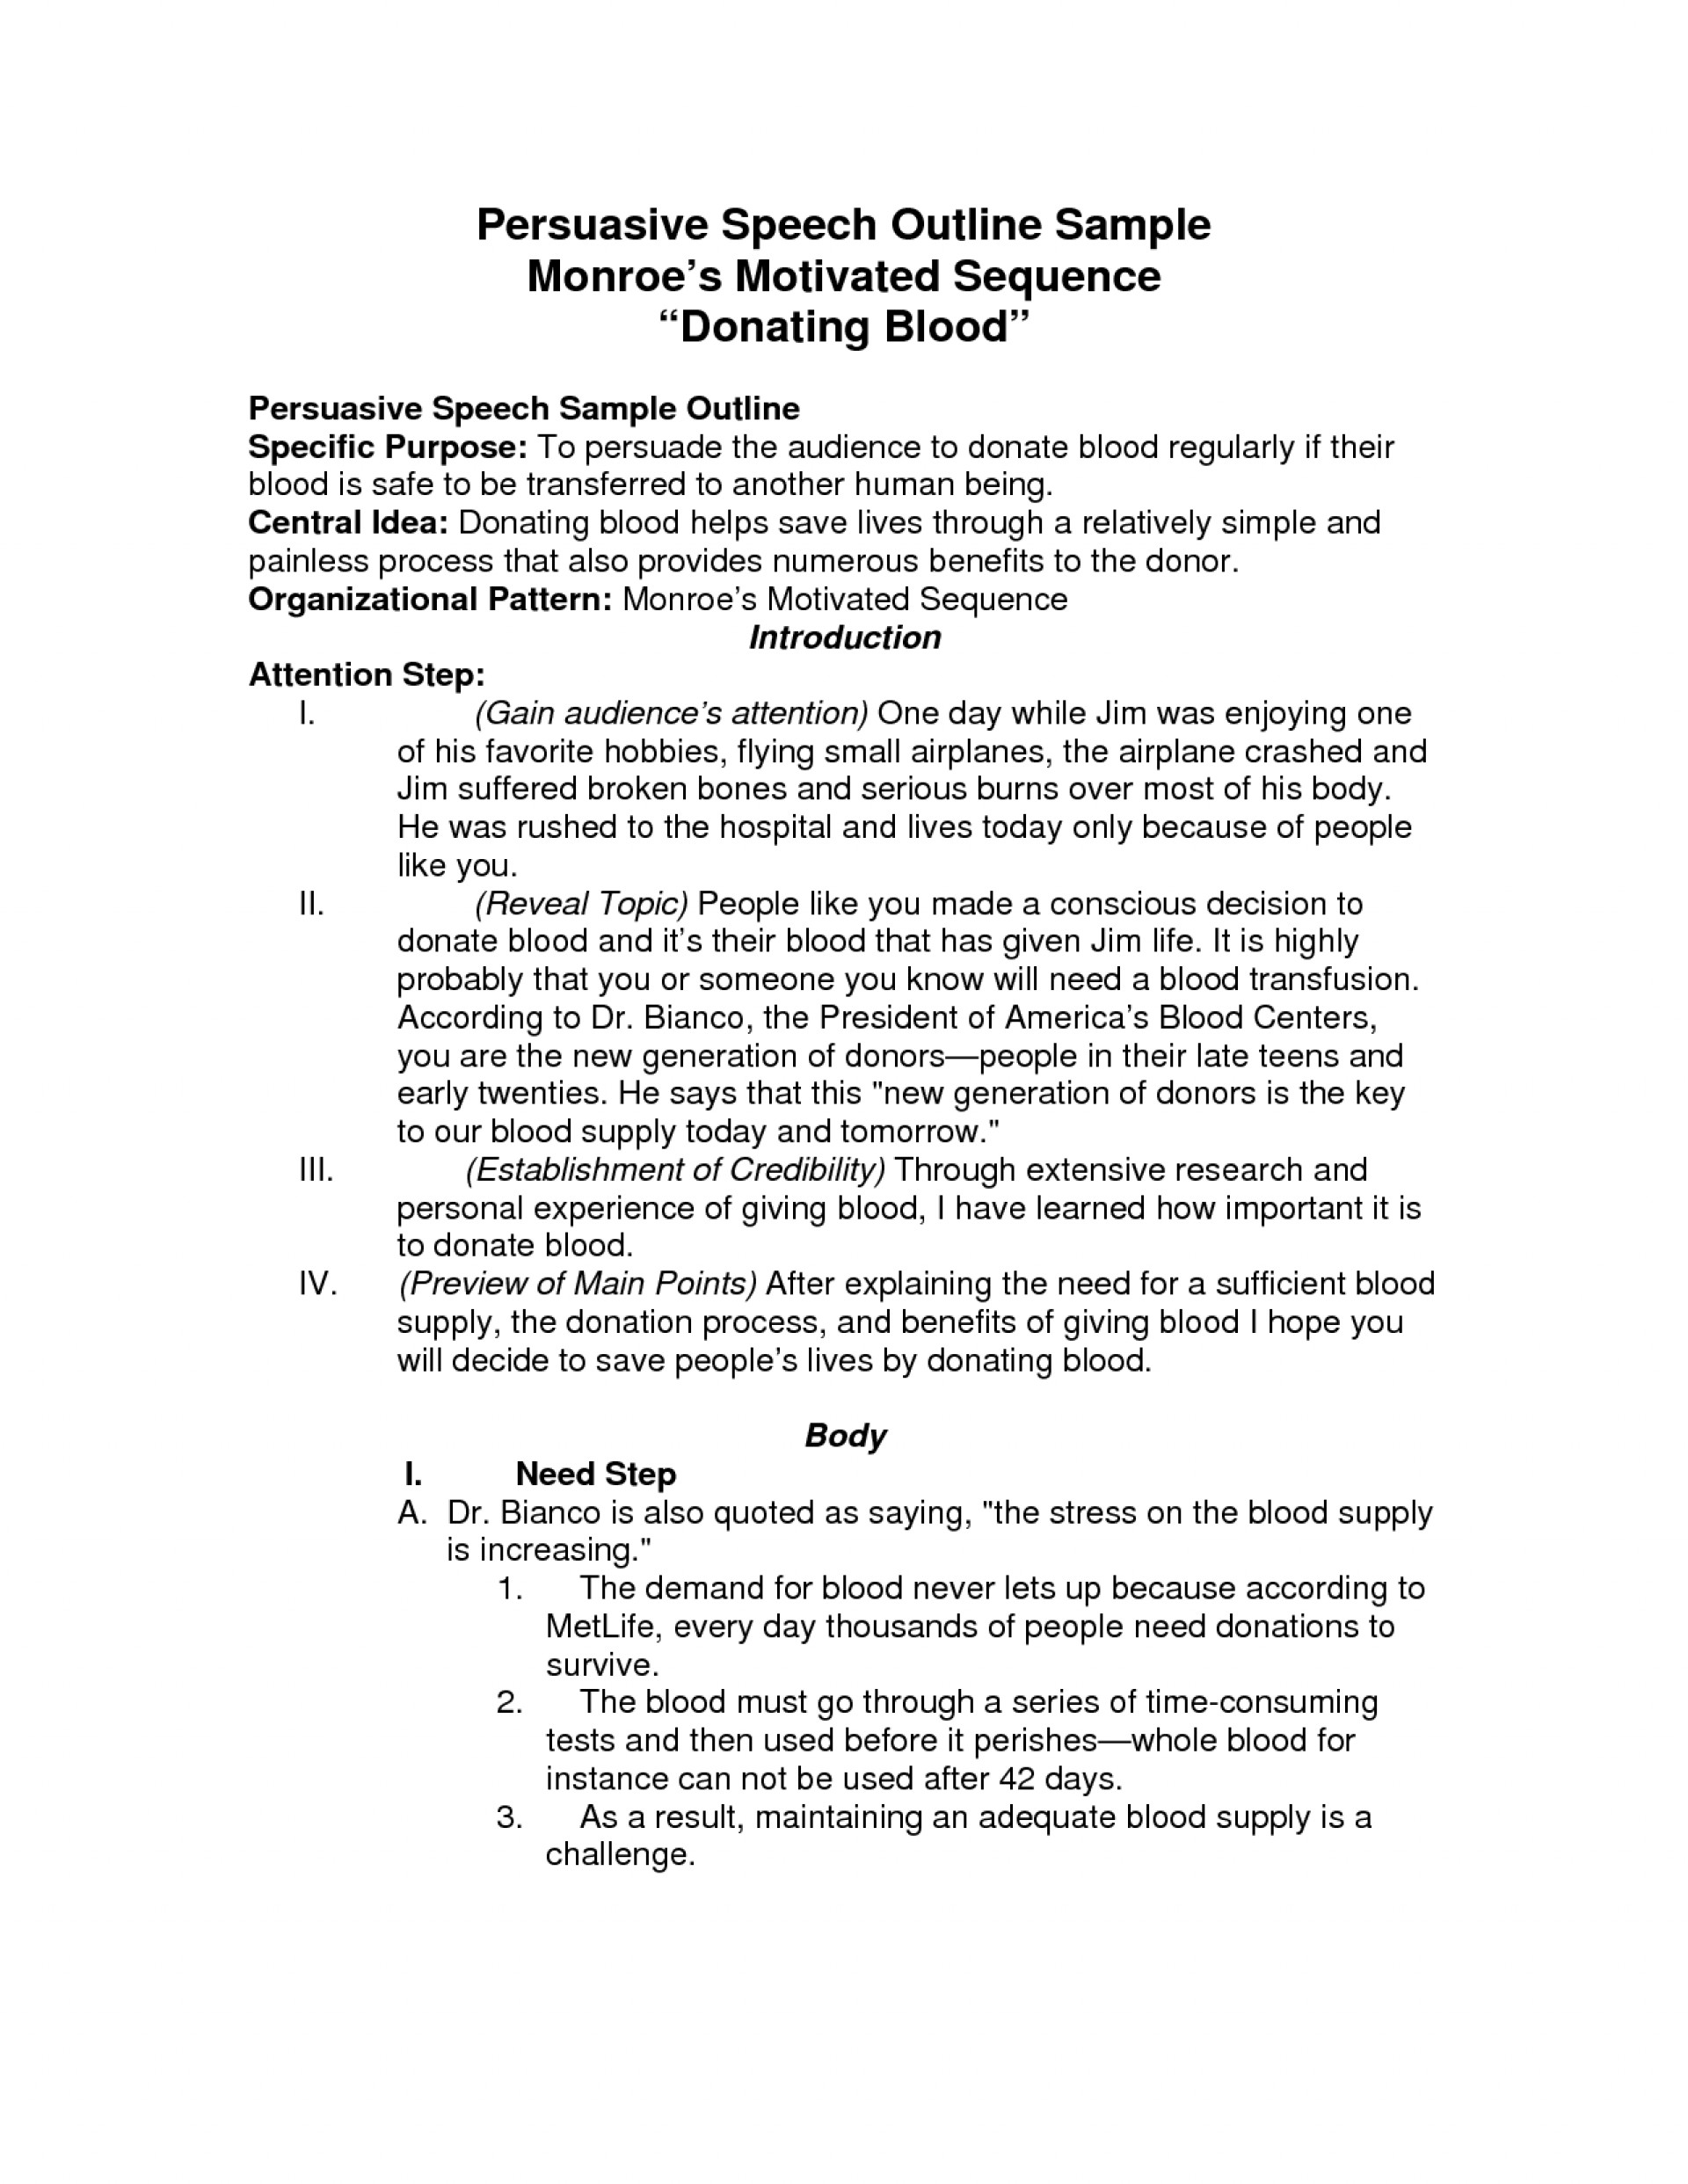 012 Persuasive Speech Outline Template 3tgrxdkt Essay Example Awesome Free On Texting While Driving Examples 1920